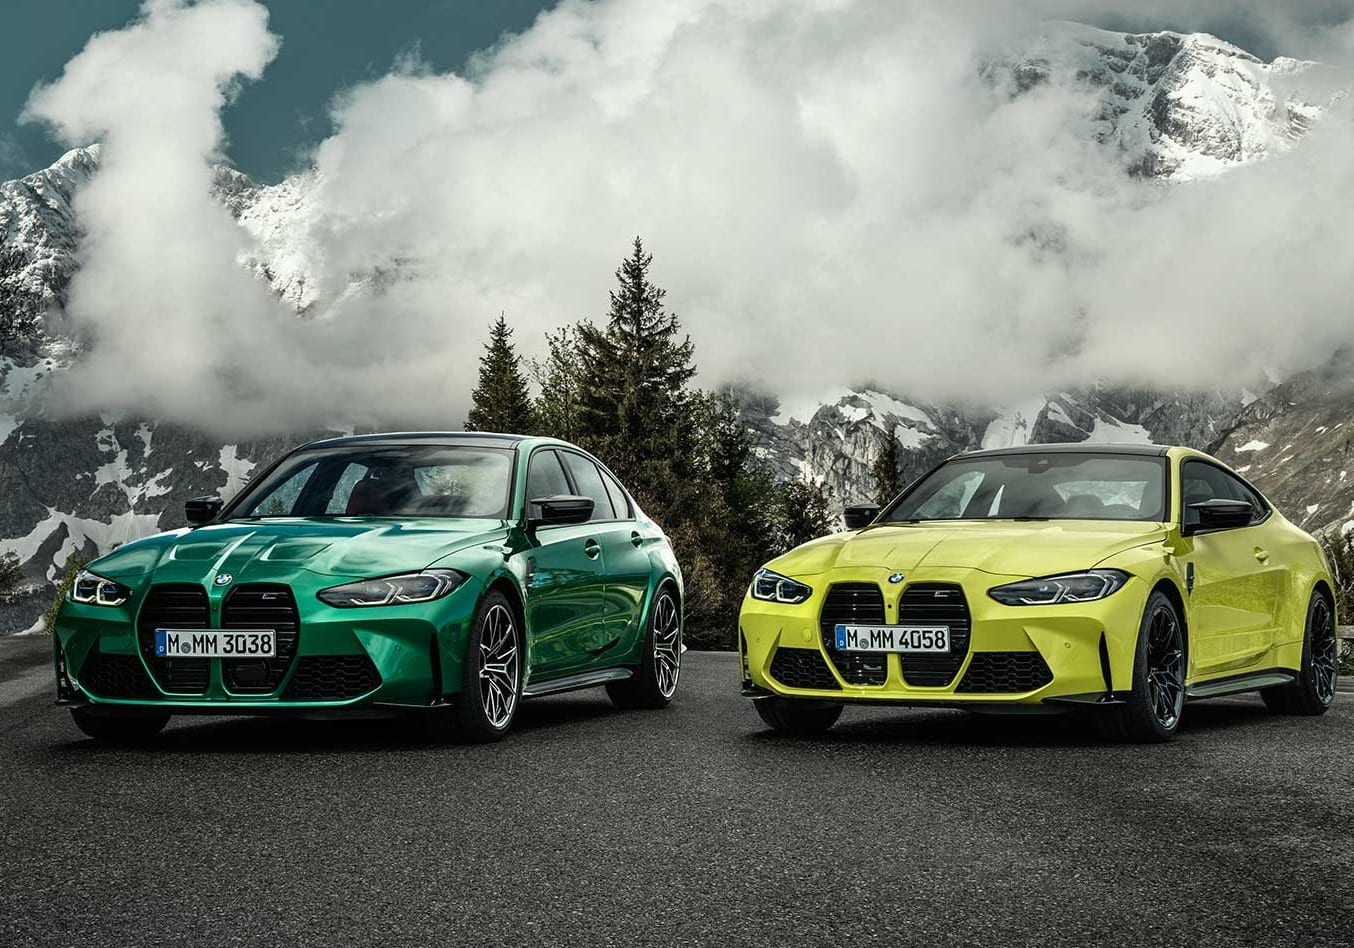 2021 BMW M3 Competition and M4 Competition parked together.